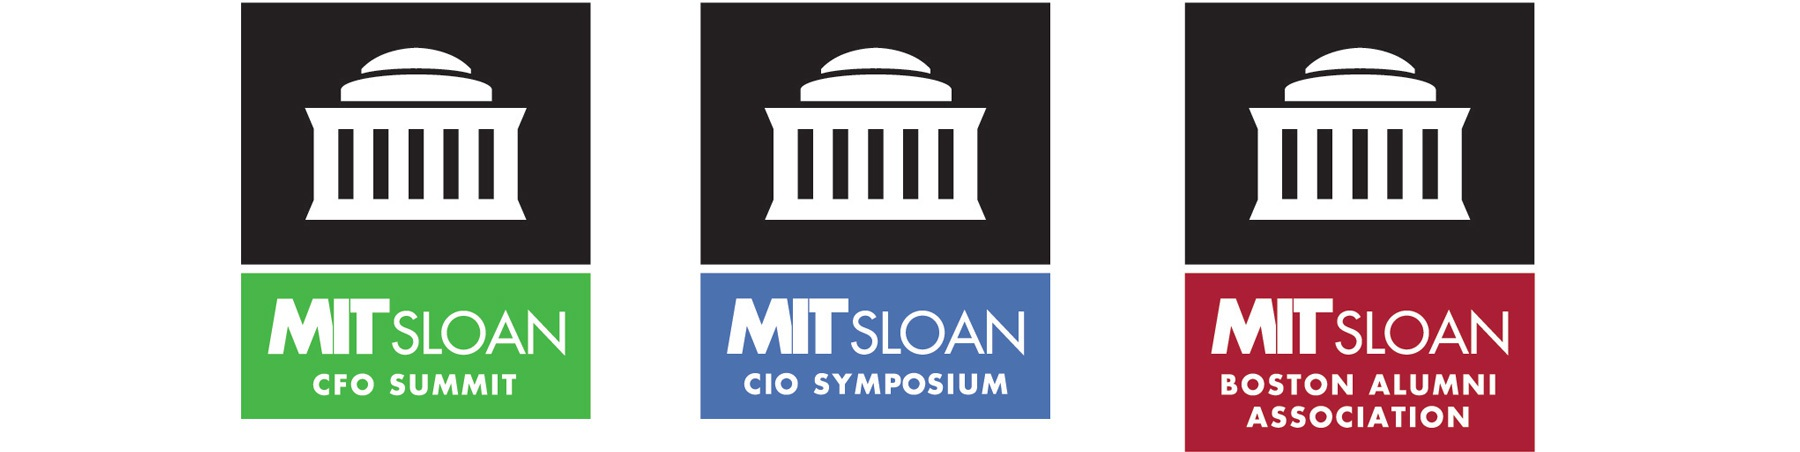 Mit Conferences Logos 3Up